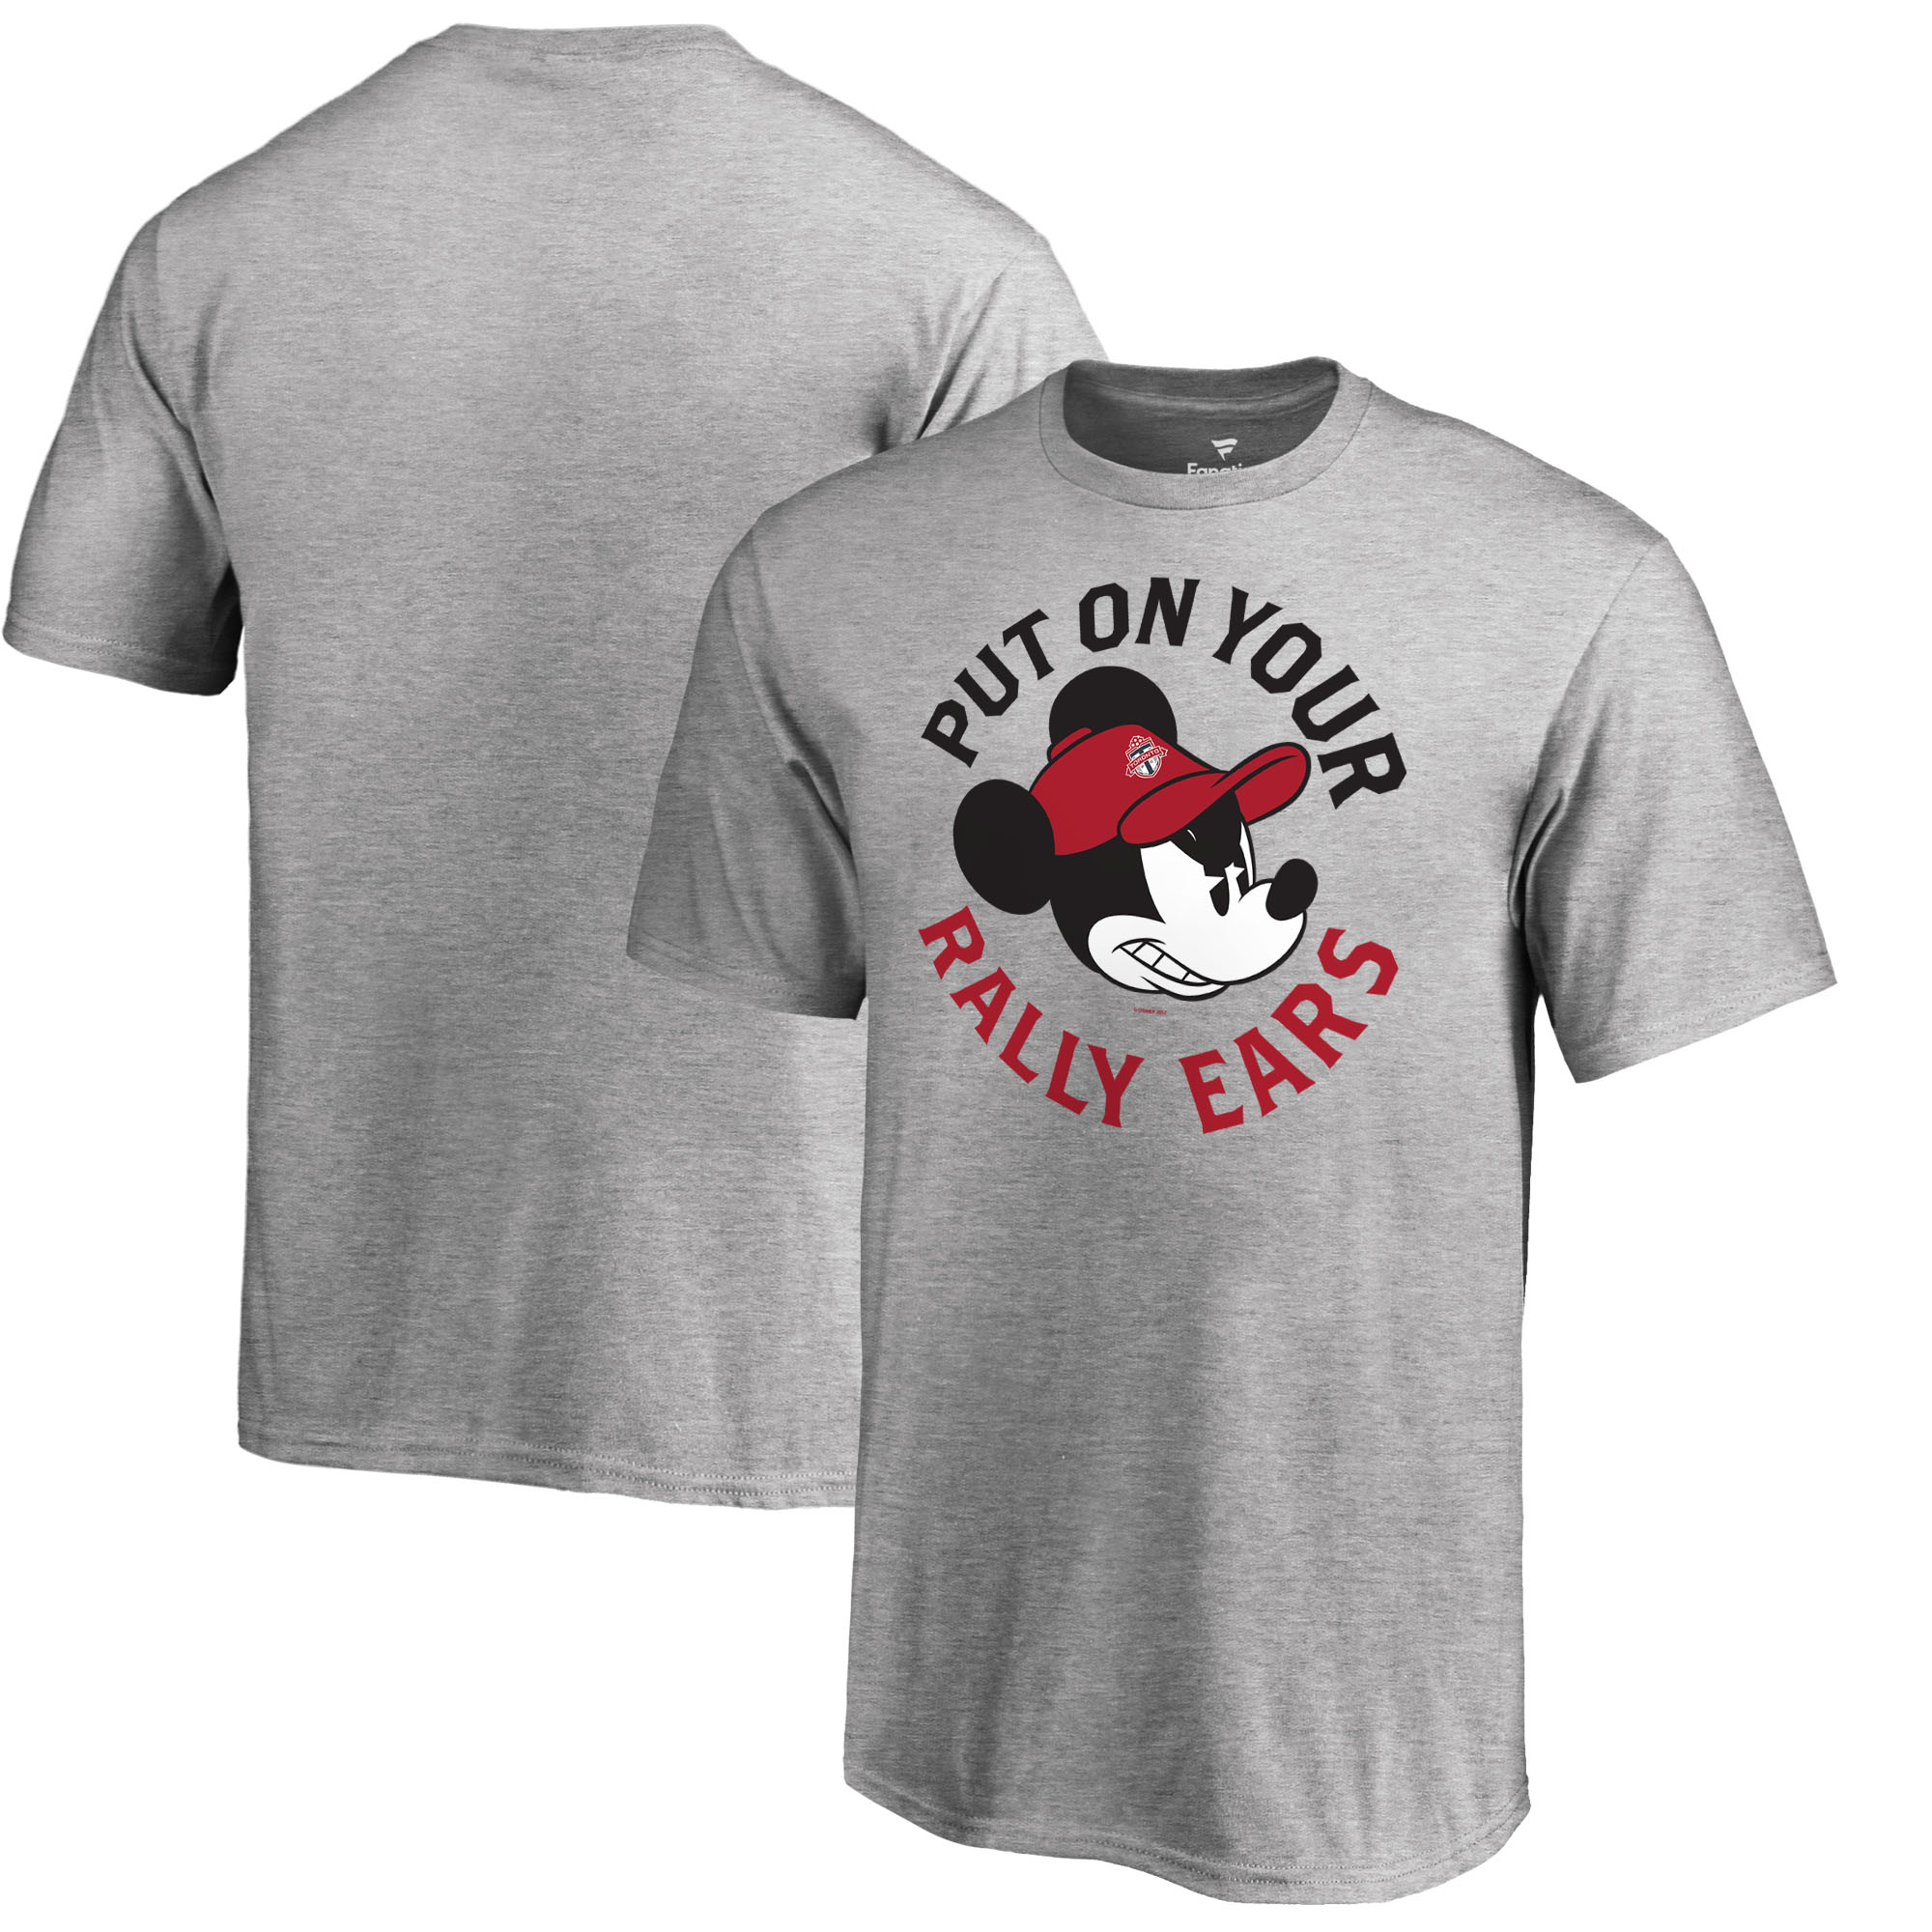 Toronto FC Fanatics Branded Youth Disney Rally Ears T-Shirt - Heathered Gray